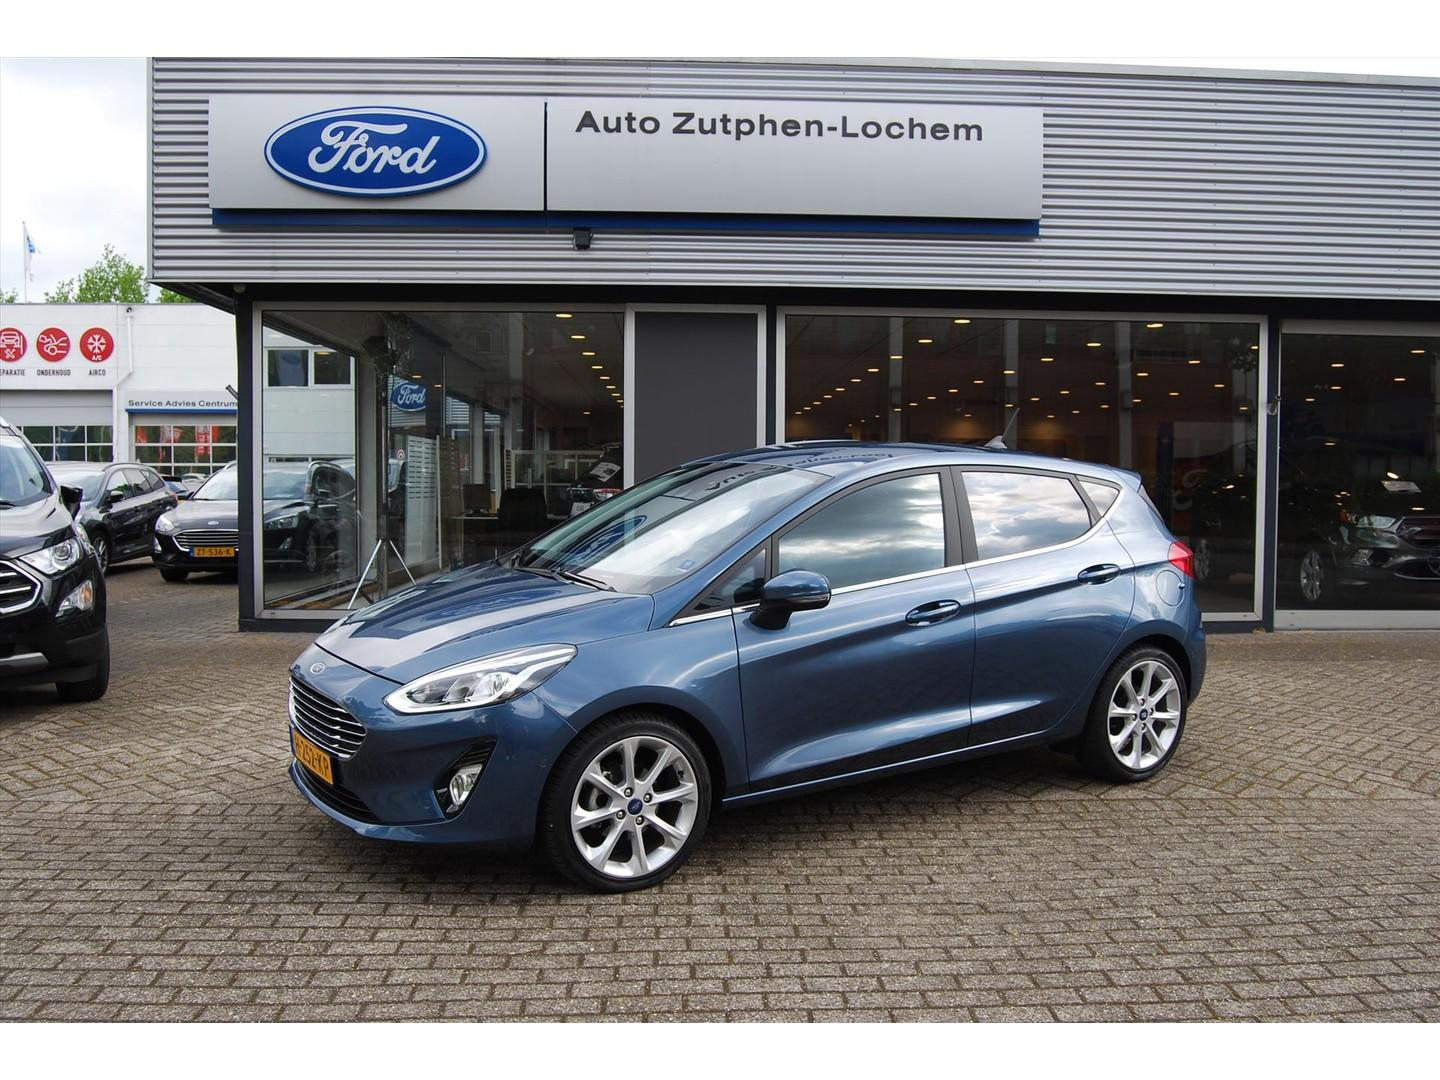 Ford Fiesta 1.0 ecoboost 100pk automaat, camera, pdc v+a